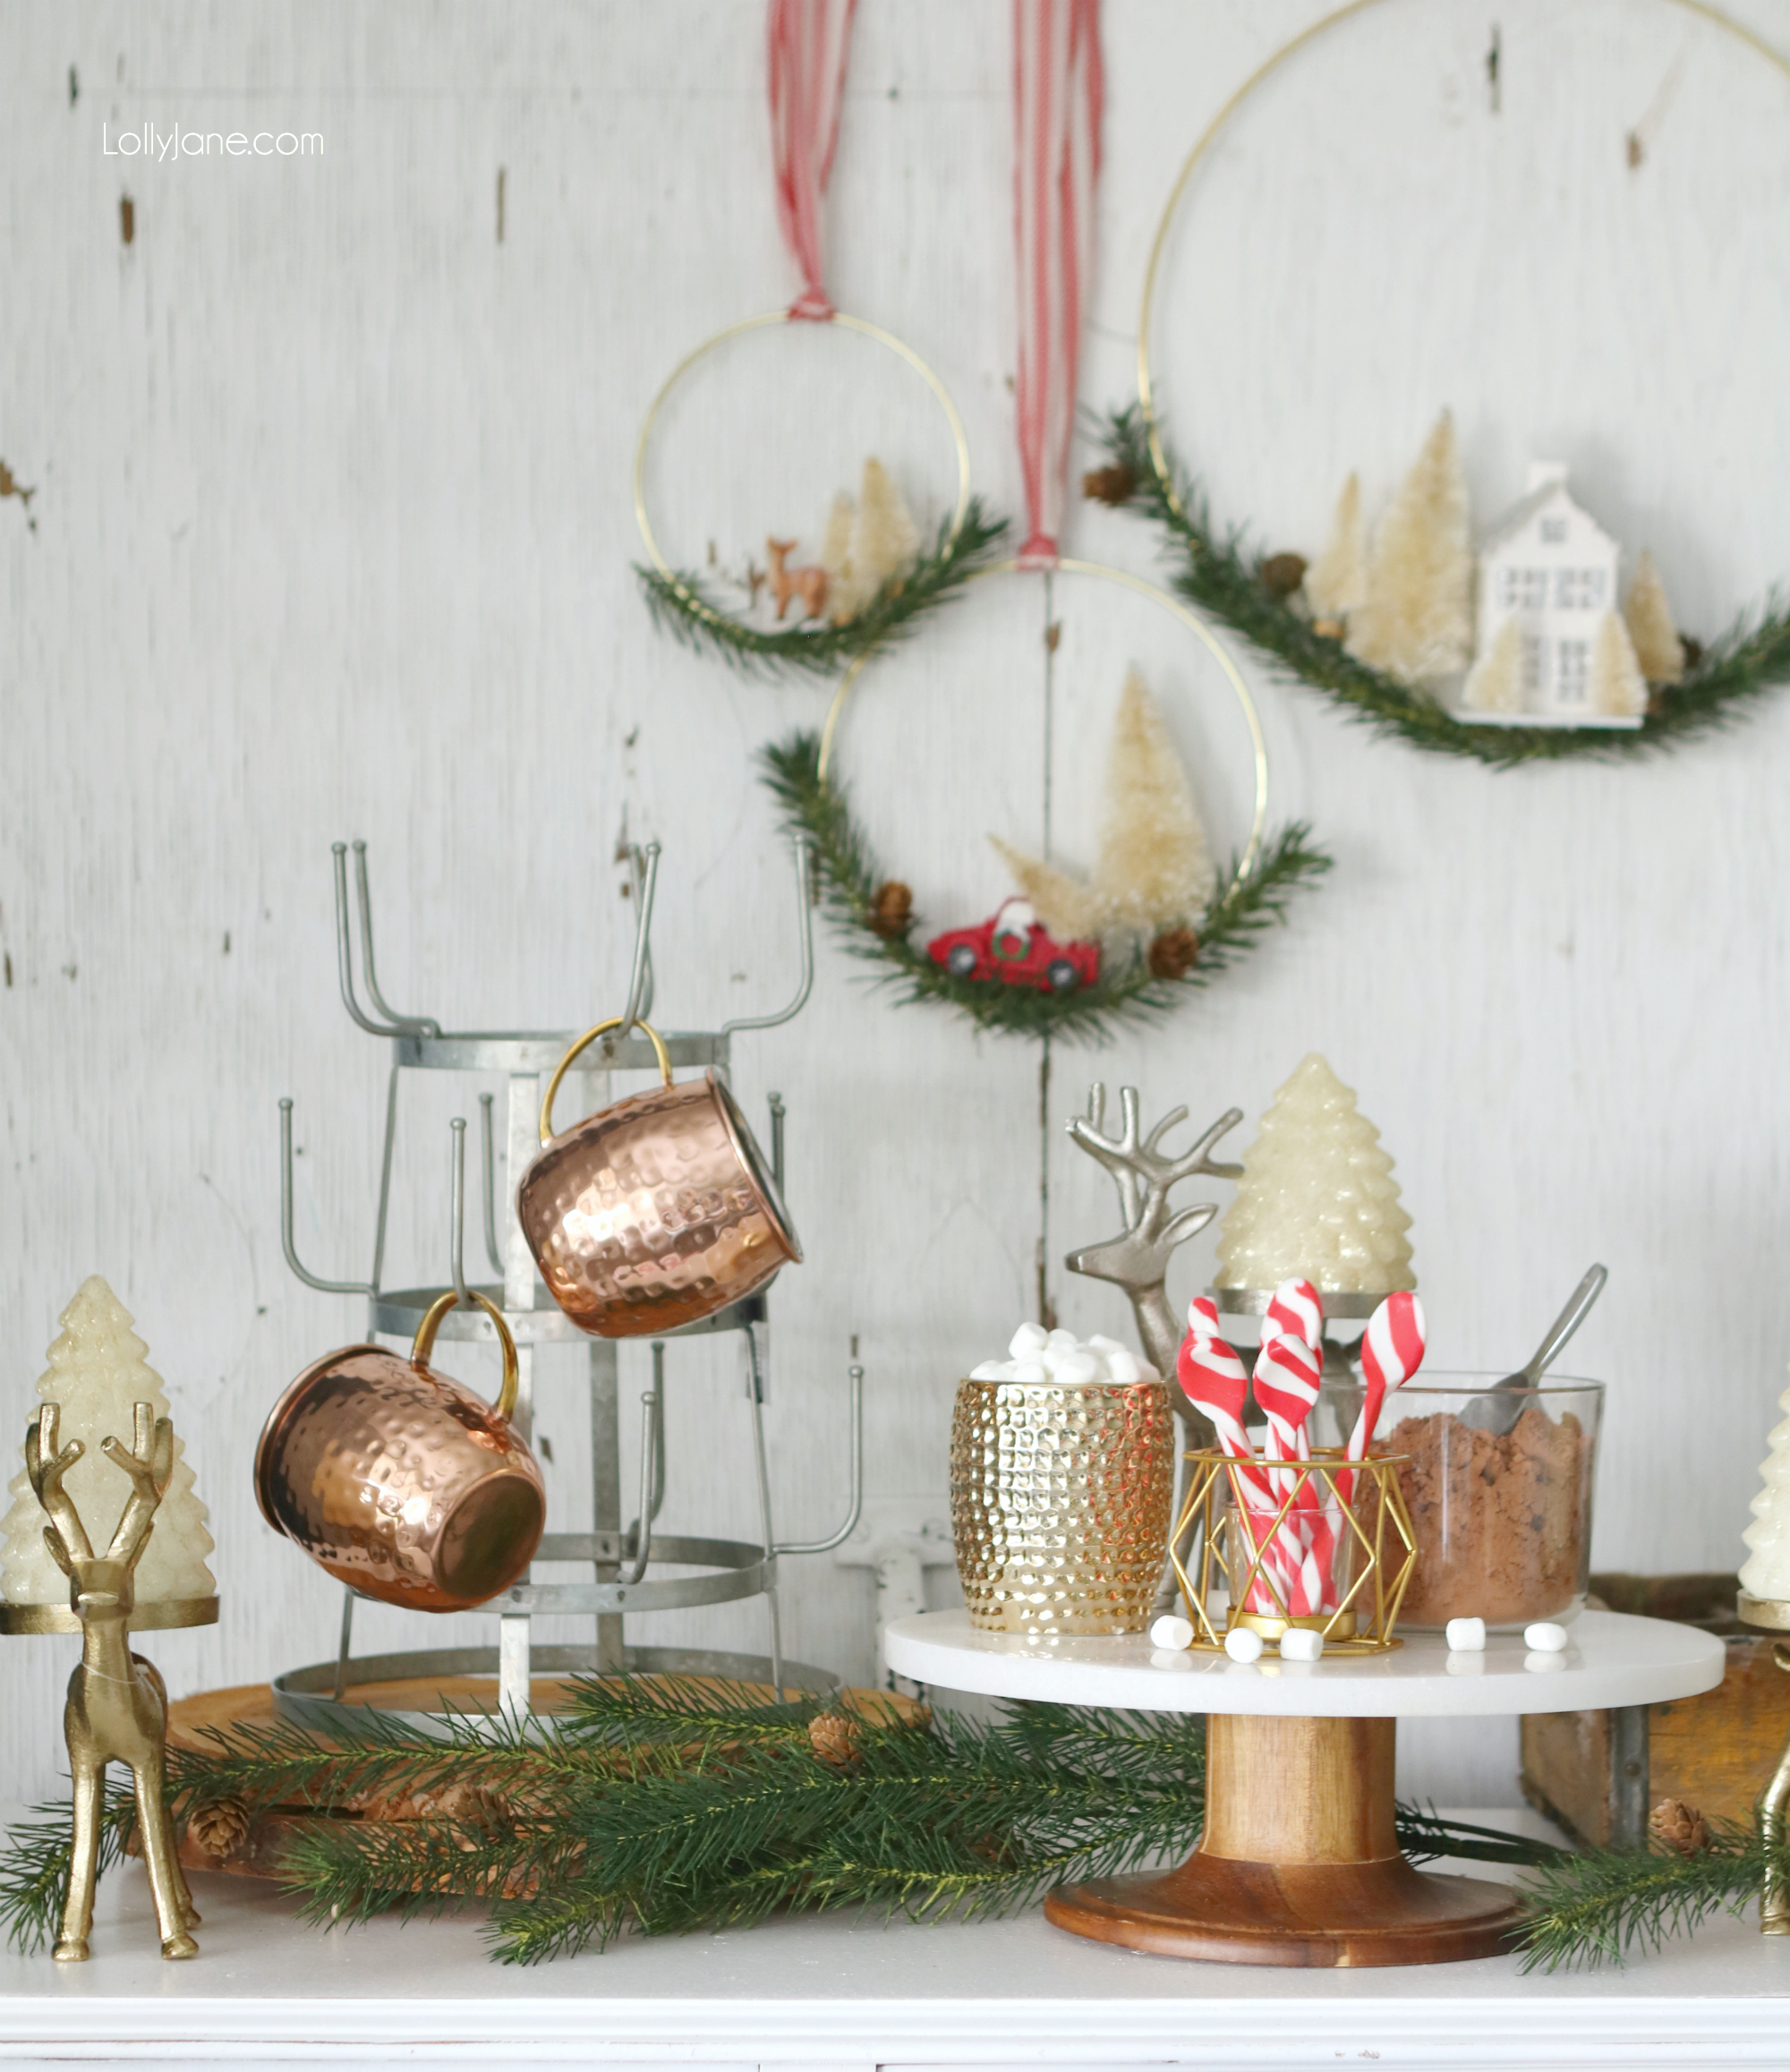 Popular Home Decor Gift Ideas For Christmas